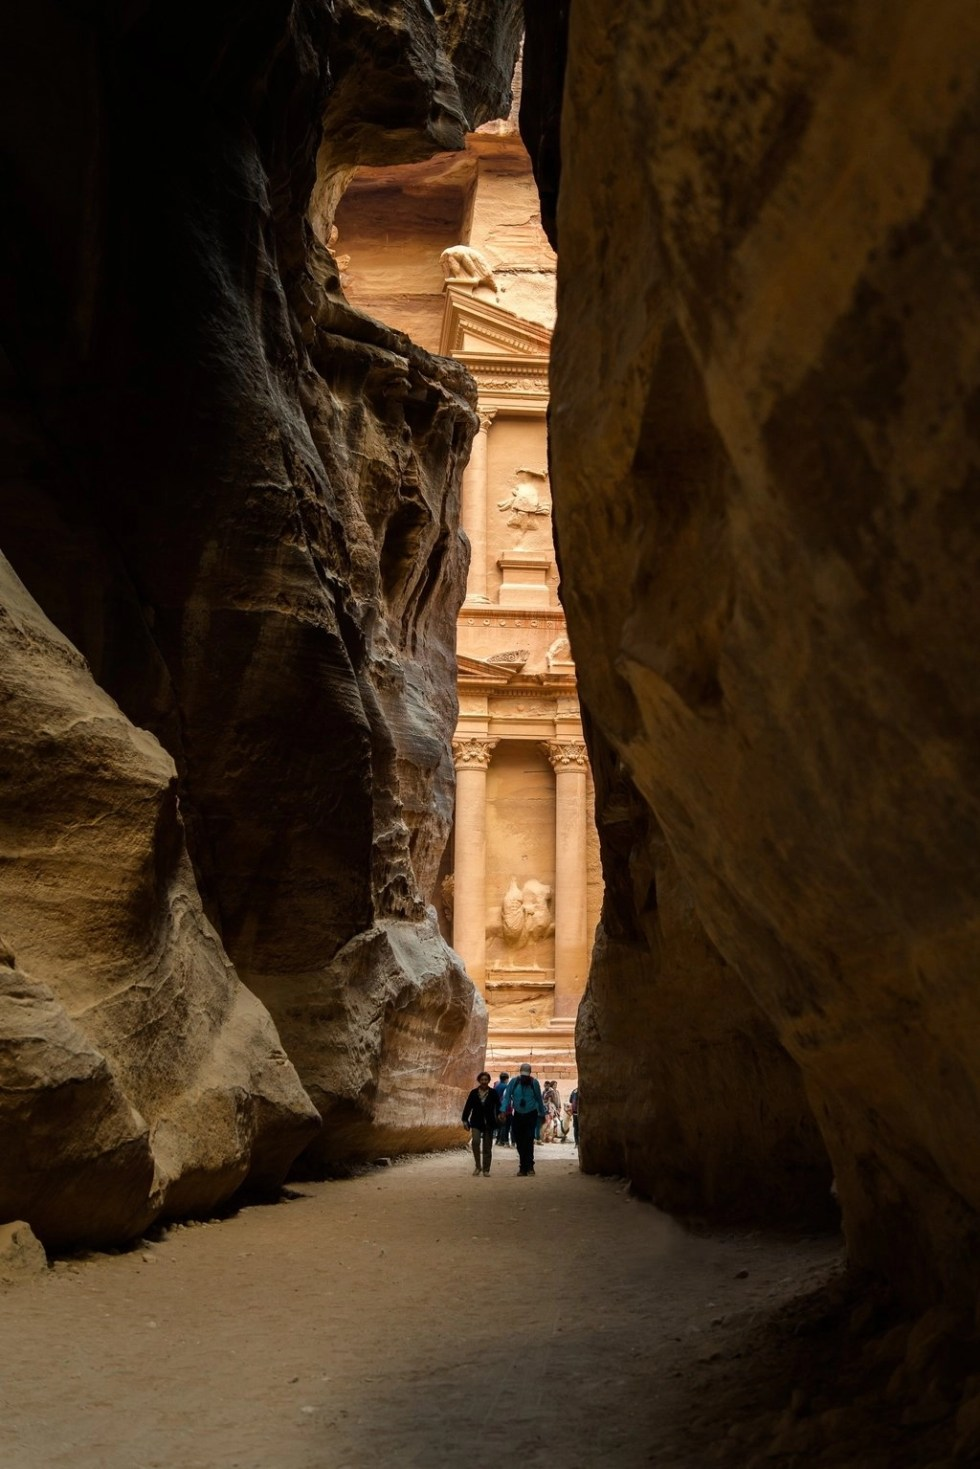 Petra's Treasury as seen through the Siq before ascending the 800 Steps to Petra's Monastery